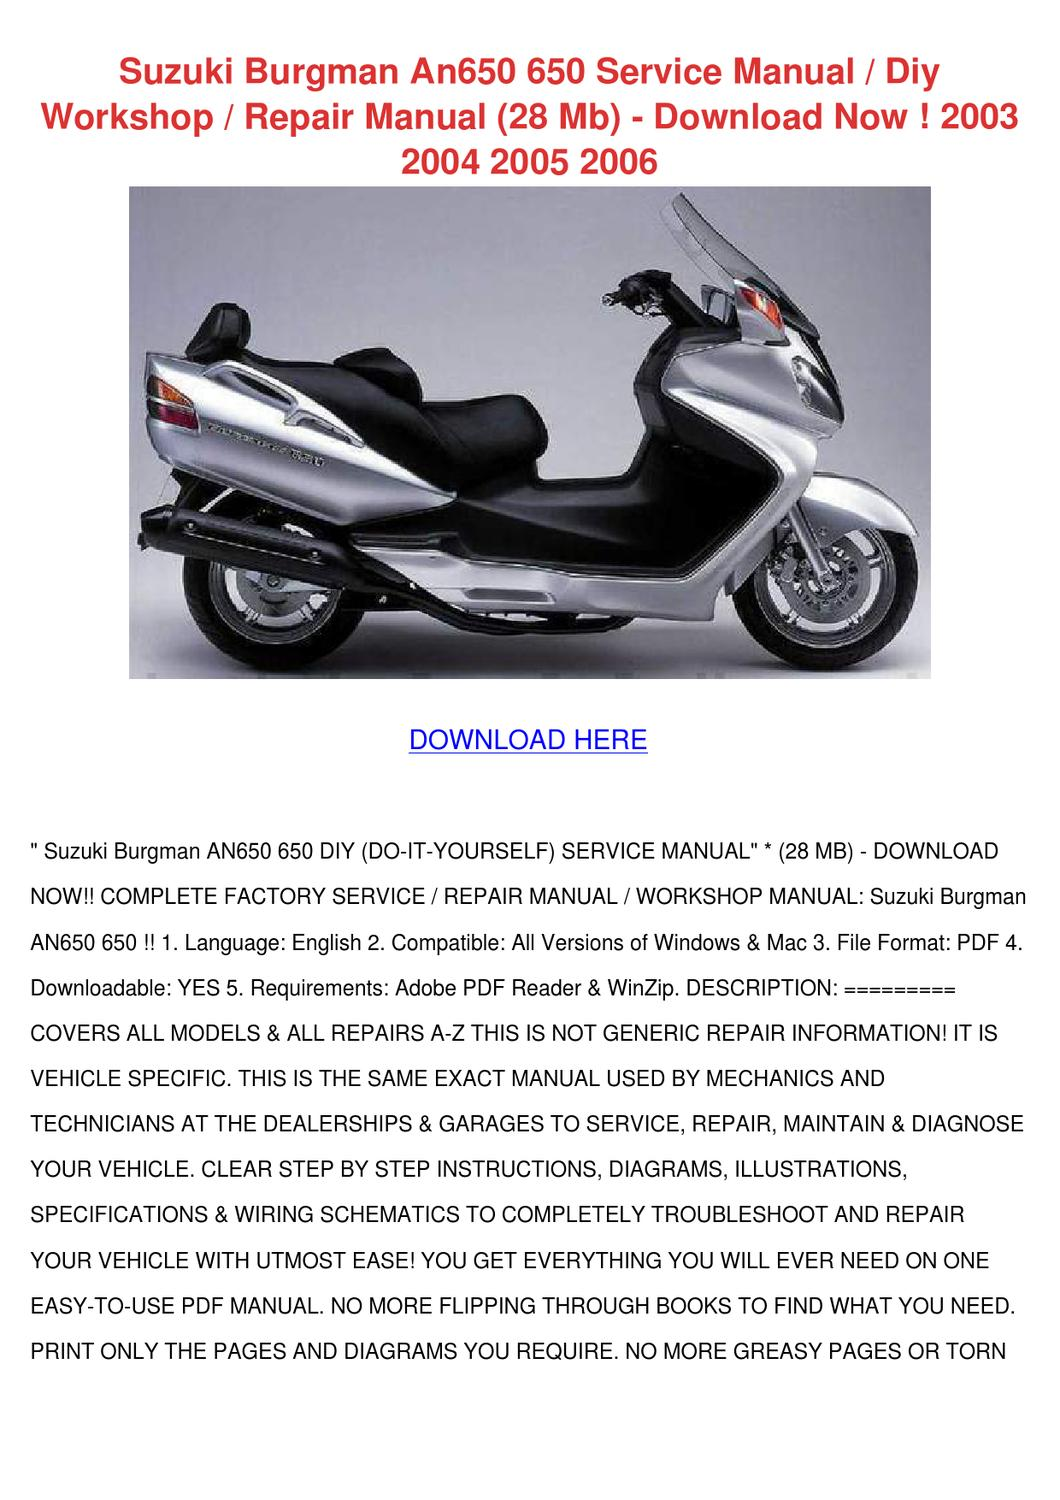 Suzuki Burgman An650 650 Service Manual Diy W By Roseline